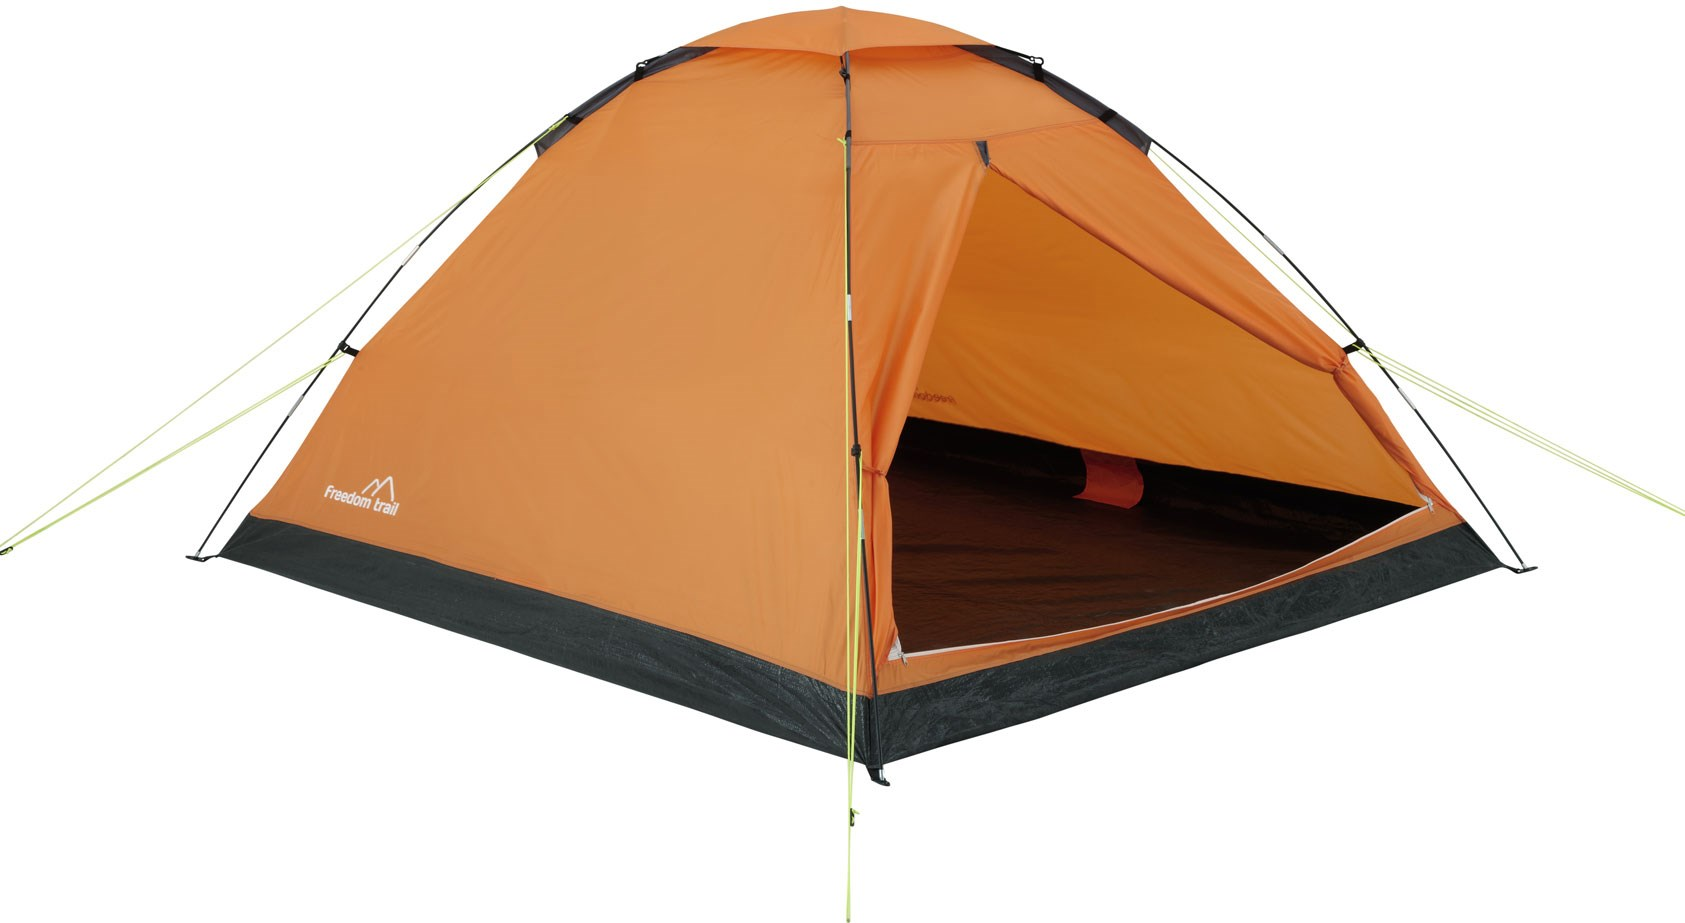 preload  sc 1 st  GO Outdoors & Freedom Trail Toco 4 Tent | GO Outdoors